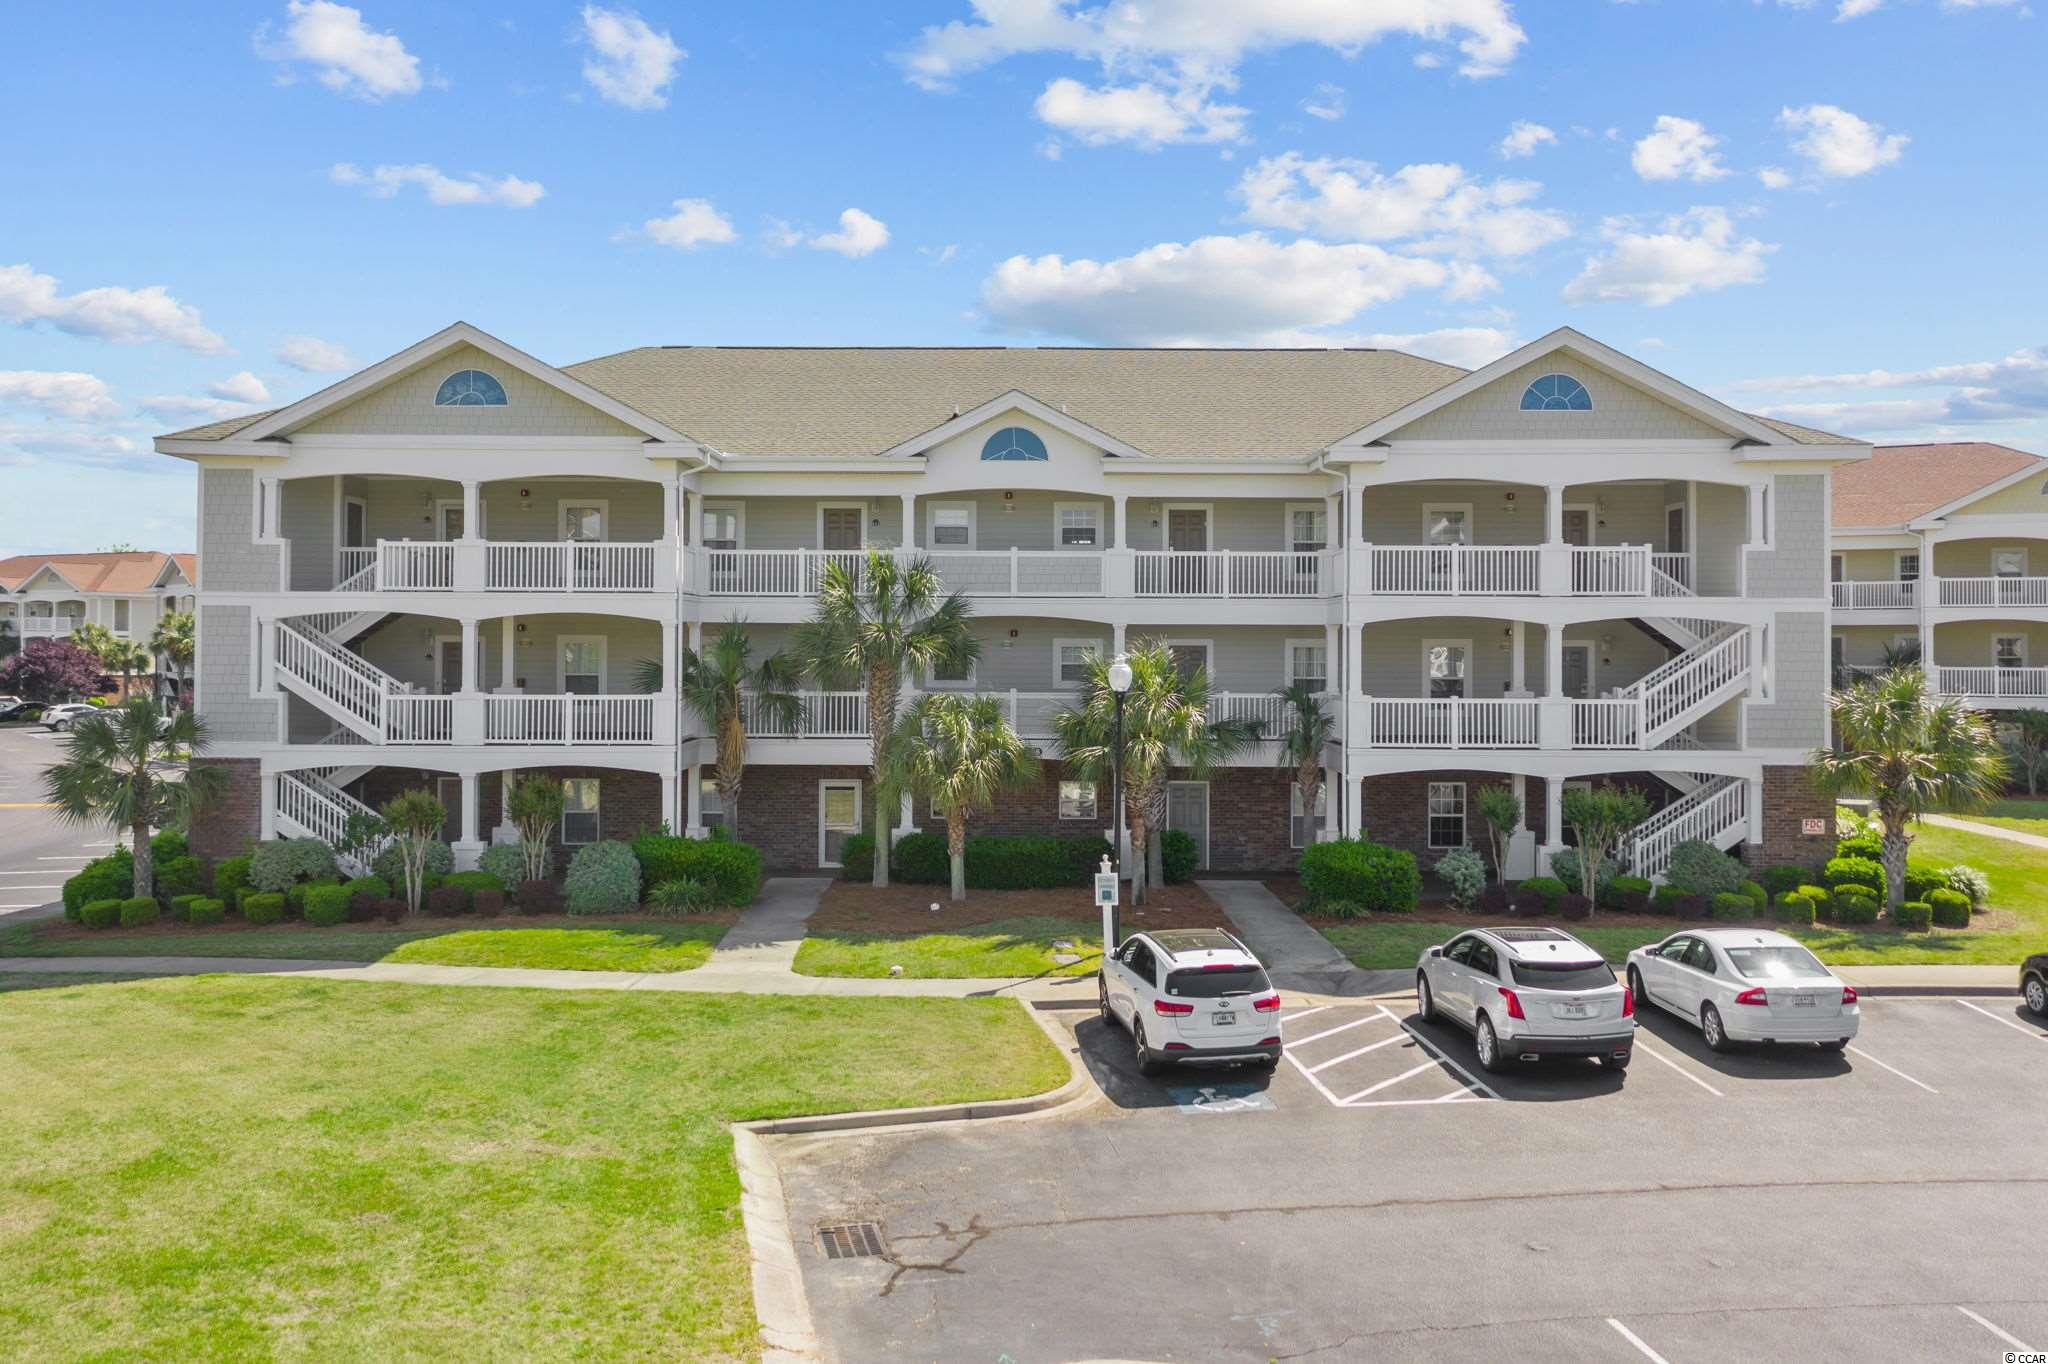 Well maintained furnished two bedroom two bathroom condo located in Ironwood at Barefoot Resort! This end unit on the second floor comes with new cabinets, carpet, and countertops that were recently installed in January of 2021. Tenant occupied but is in excellent condition. Barefoot Resort offers four championship golf courses, two multi-million clubhouses, four onsite restaurants, a private beach cabana with seasonal shuttle service to and from the beach, and access to the 15,000 square foot salt water pool along the Barefoot Marina. This is an overall great opportunity for anyone looking for a primary or secondary home. Come by to see this condo today!